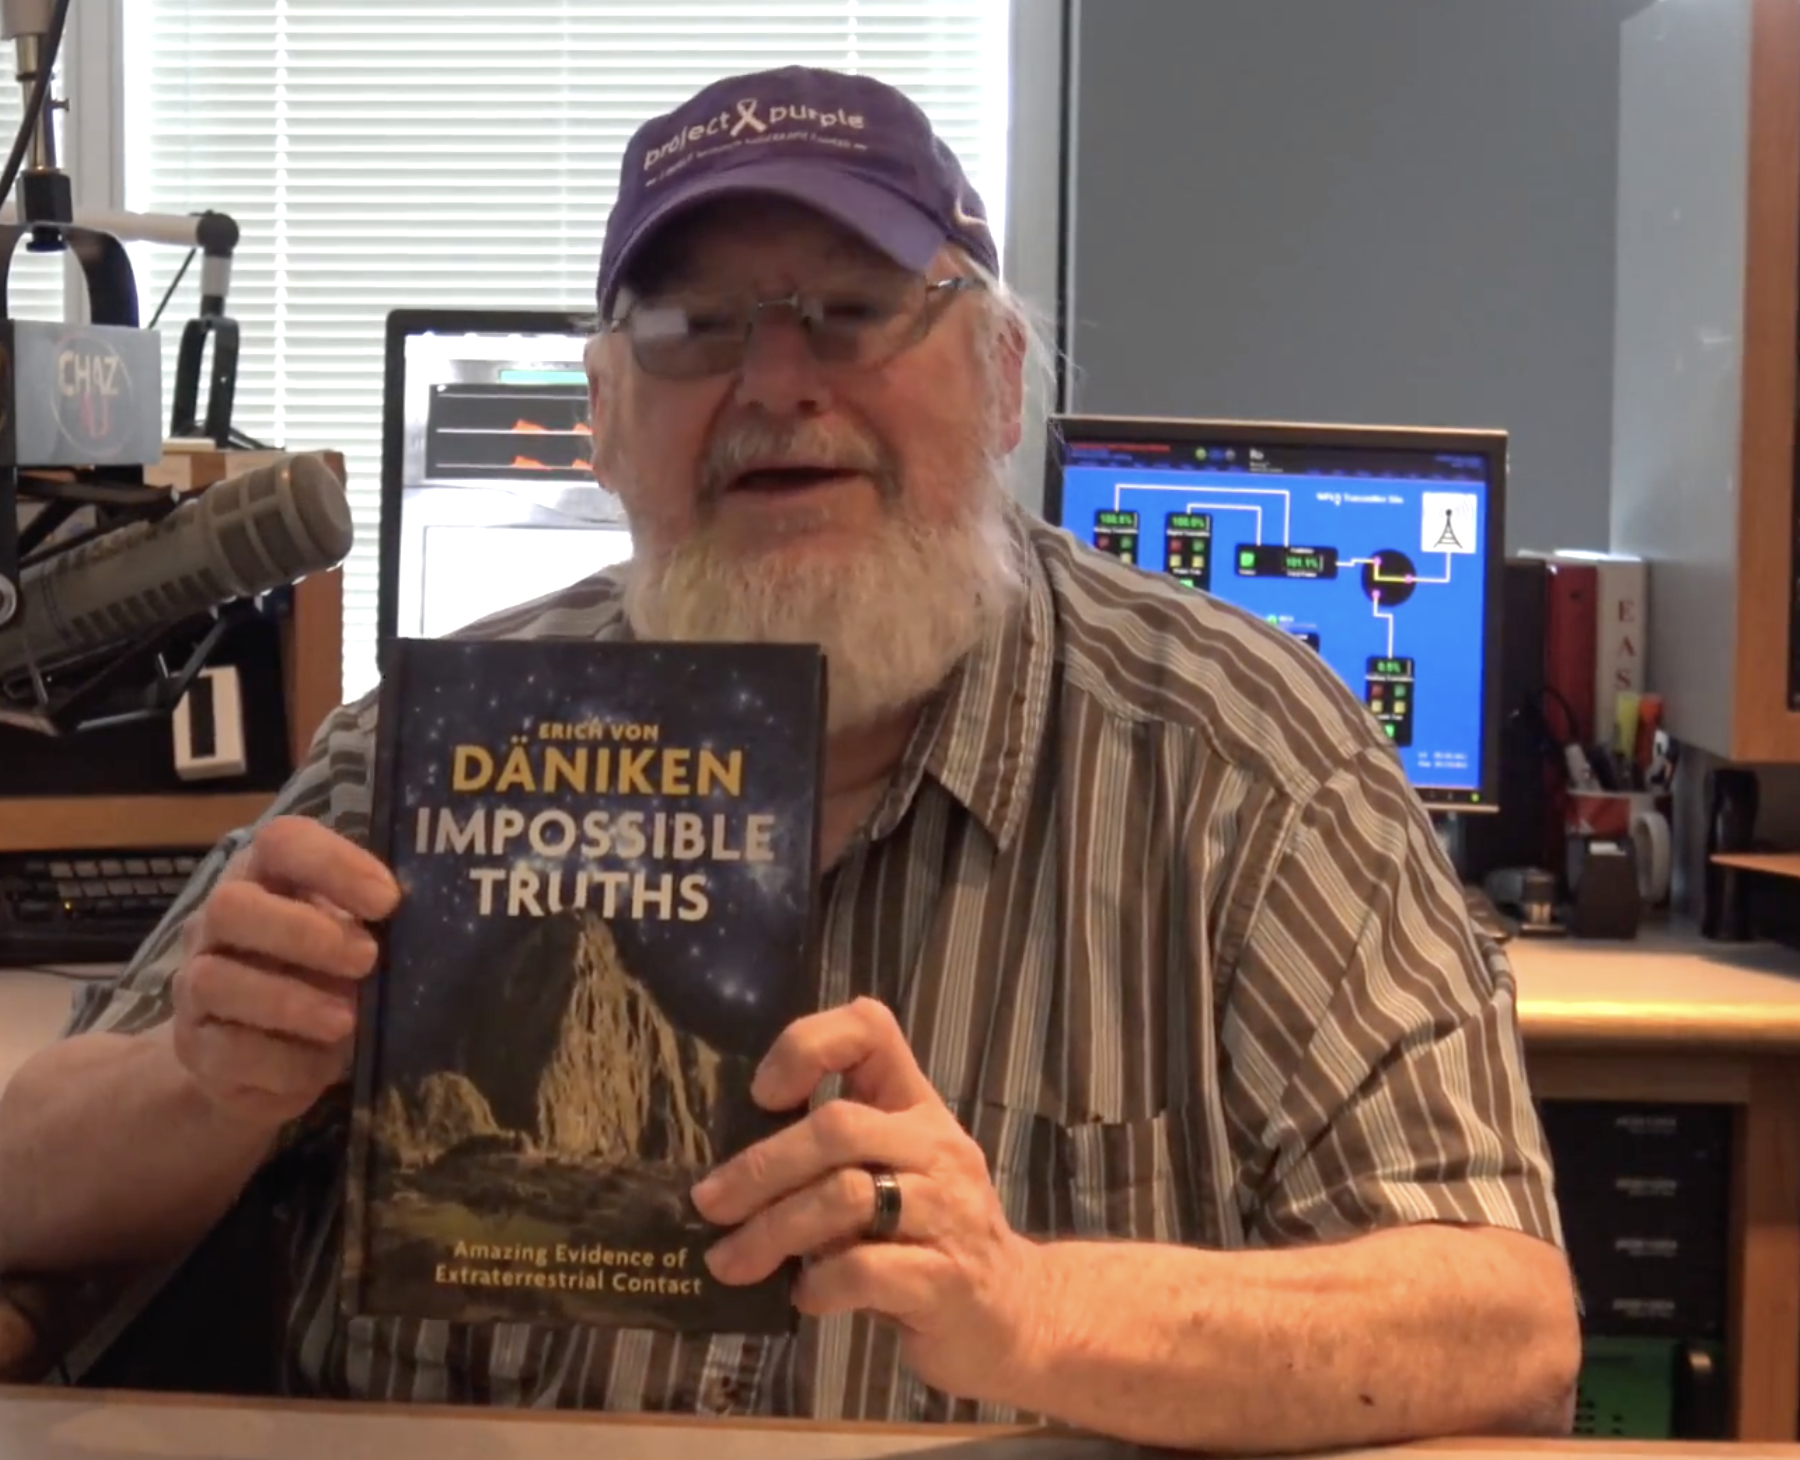 Wiggy's Books: Impossible Truths